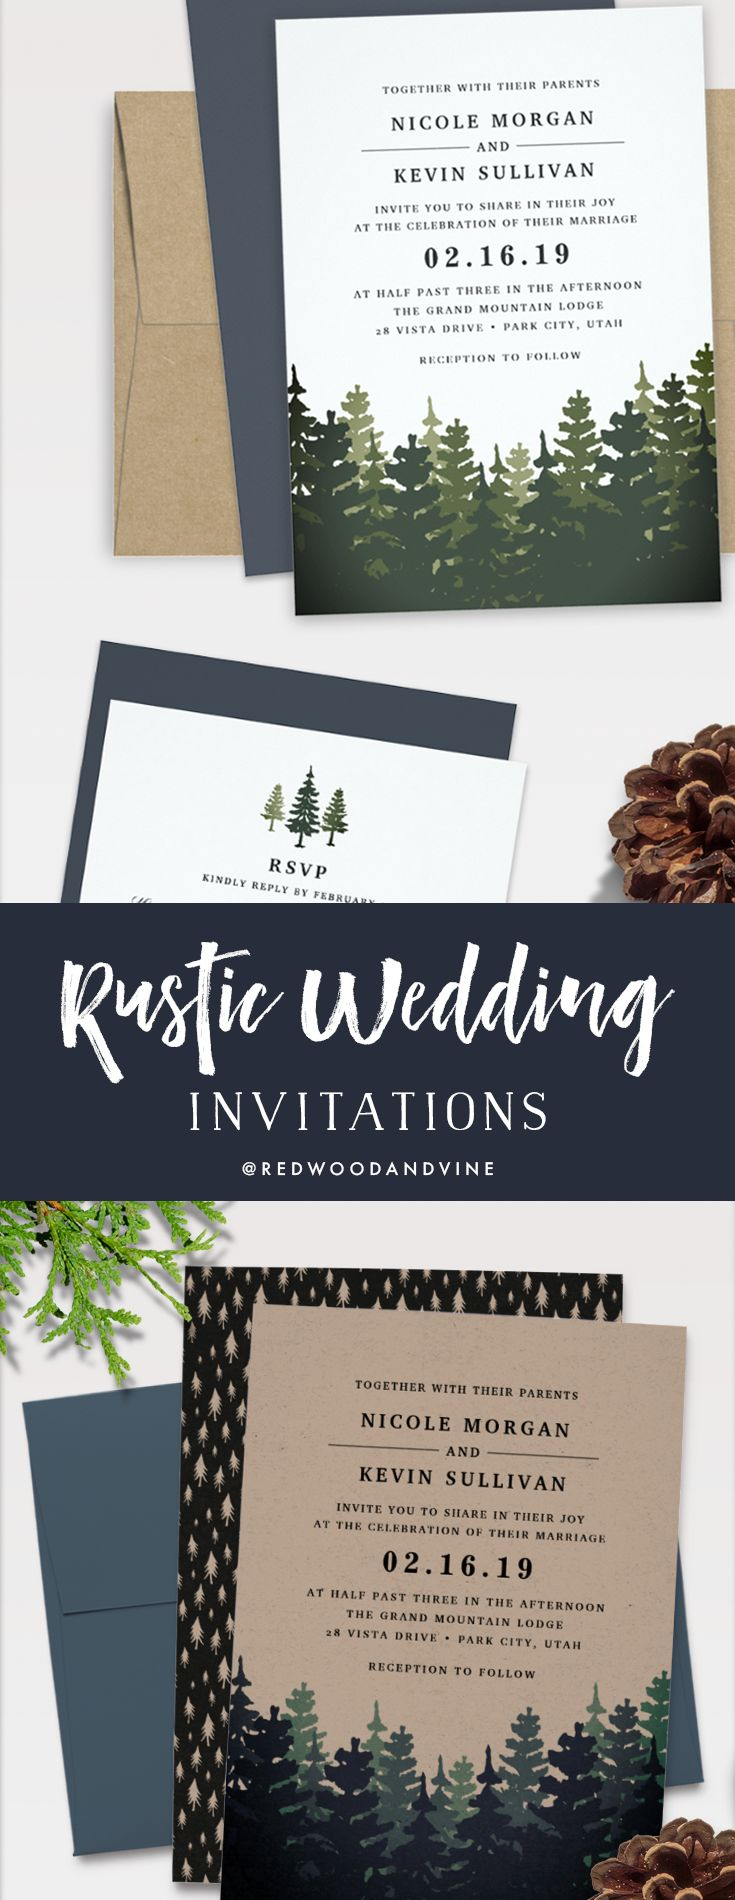 elegant rustic wedding invitations from redwood & vine design co. // build your dream wedding suite with dozens of matching items! #kraftweddinginvitations #rusticweddings #pinetrees #forest